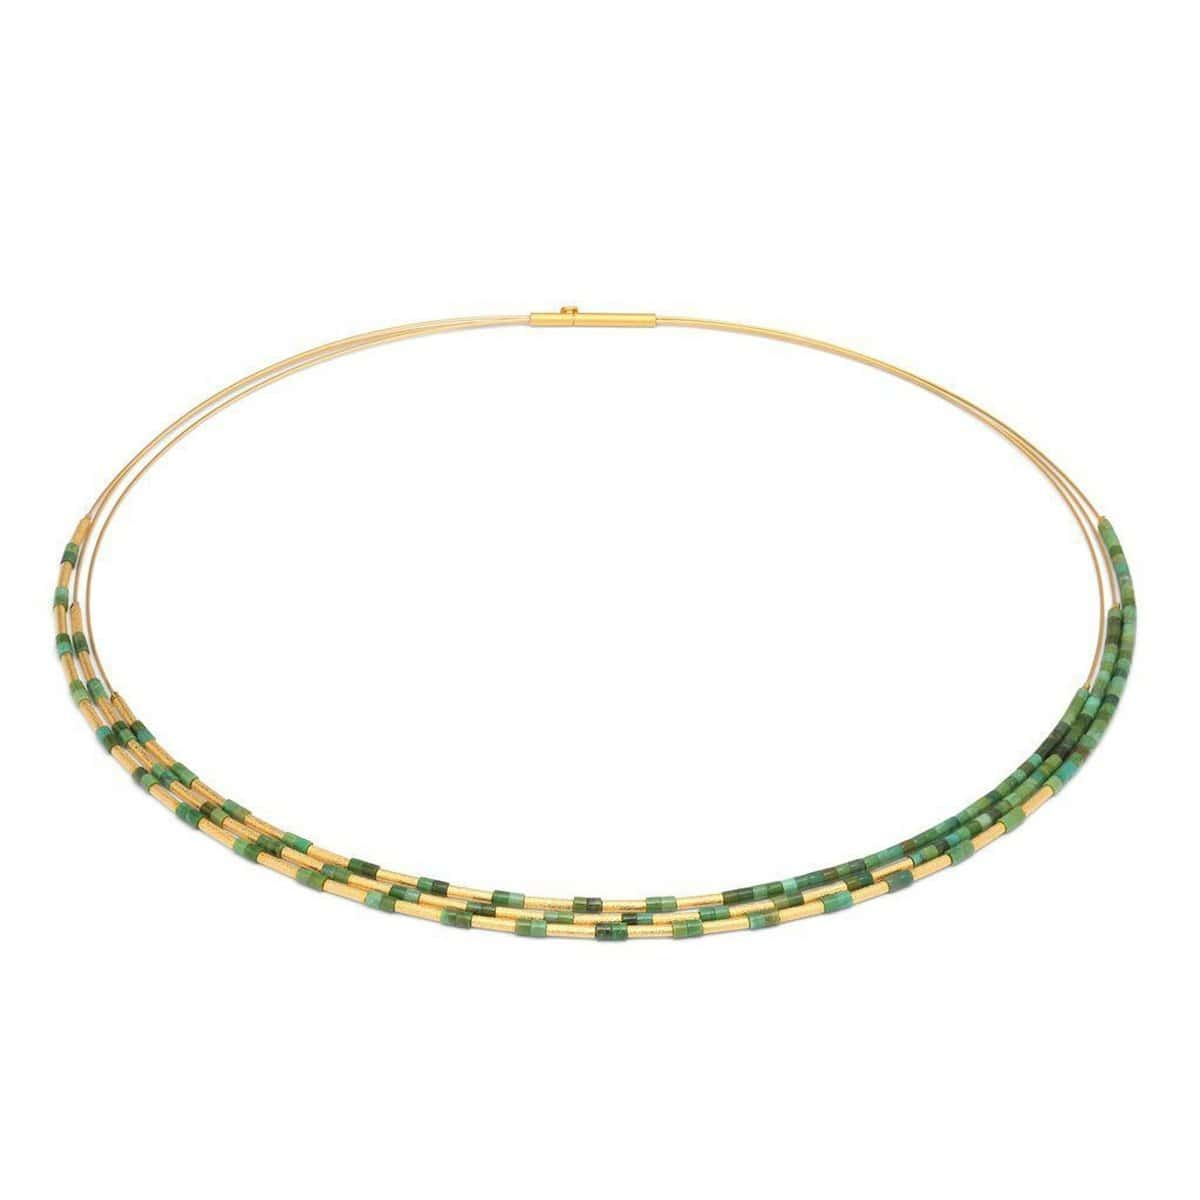 Clea Green Turquoise Necklace - 85375356-Bernd Wolf-Renee Taylor Gallery